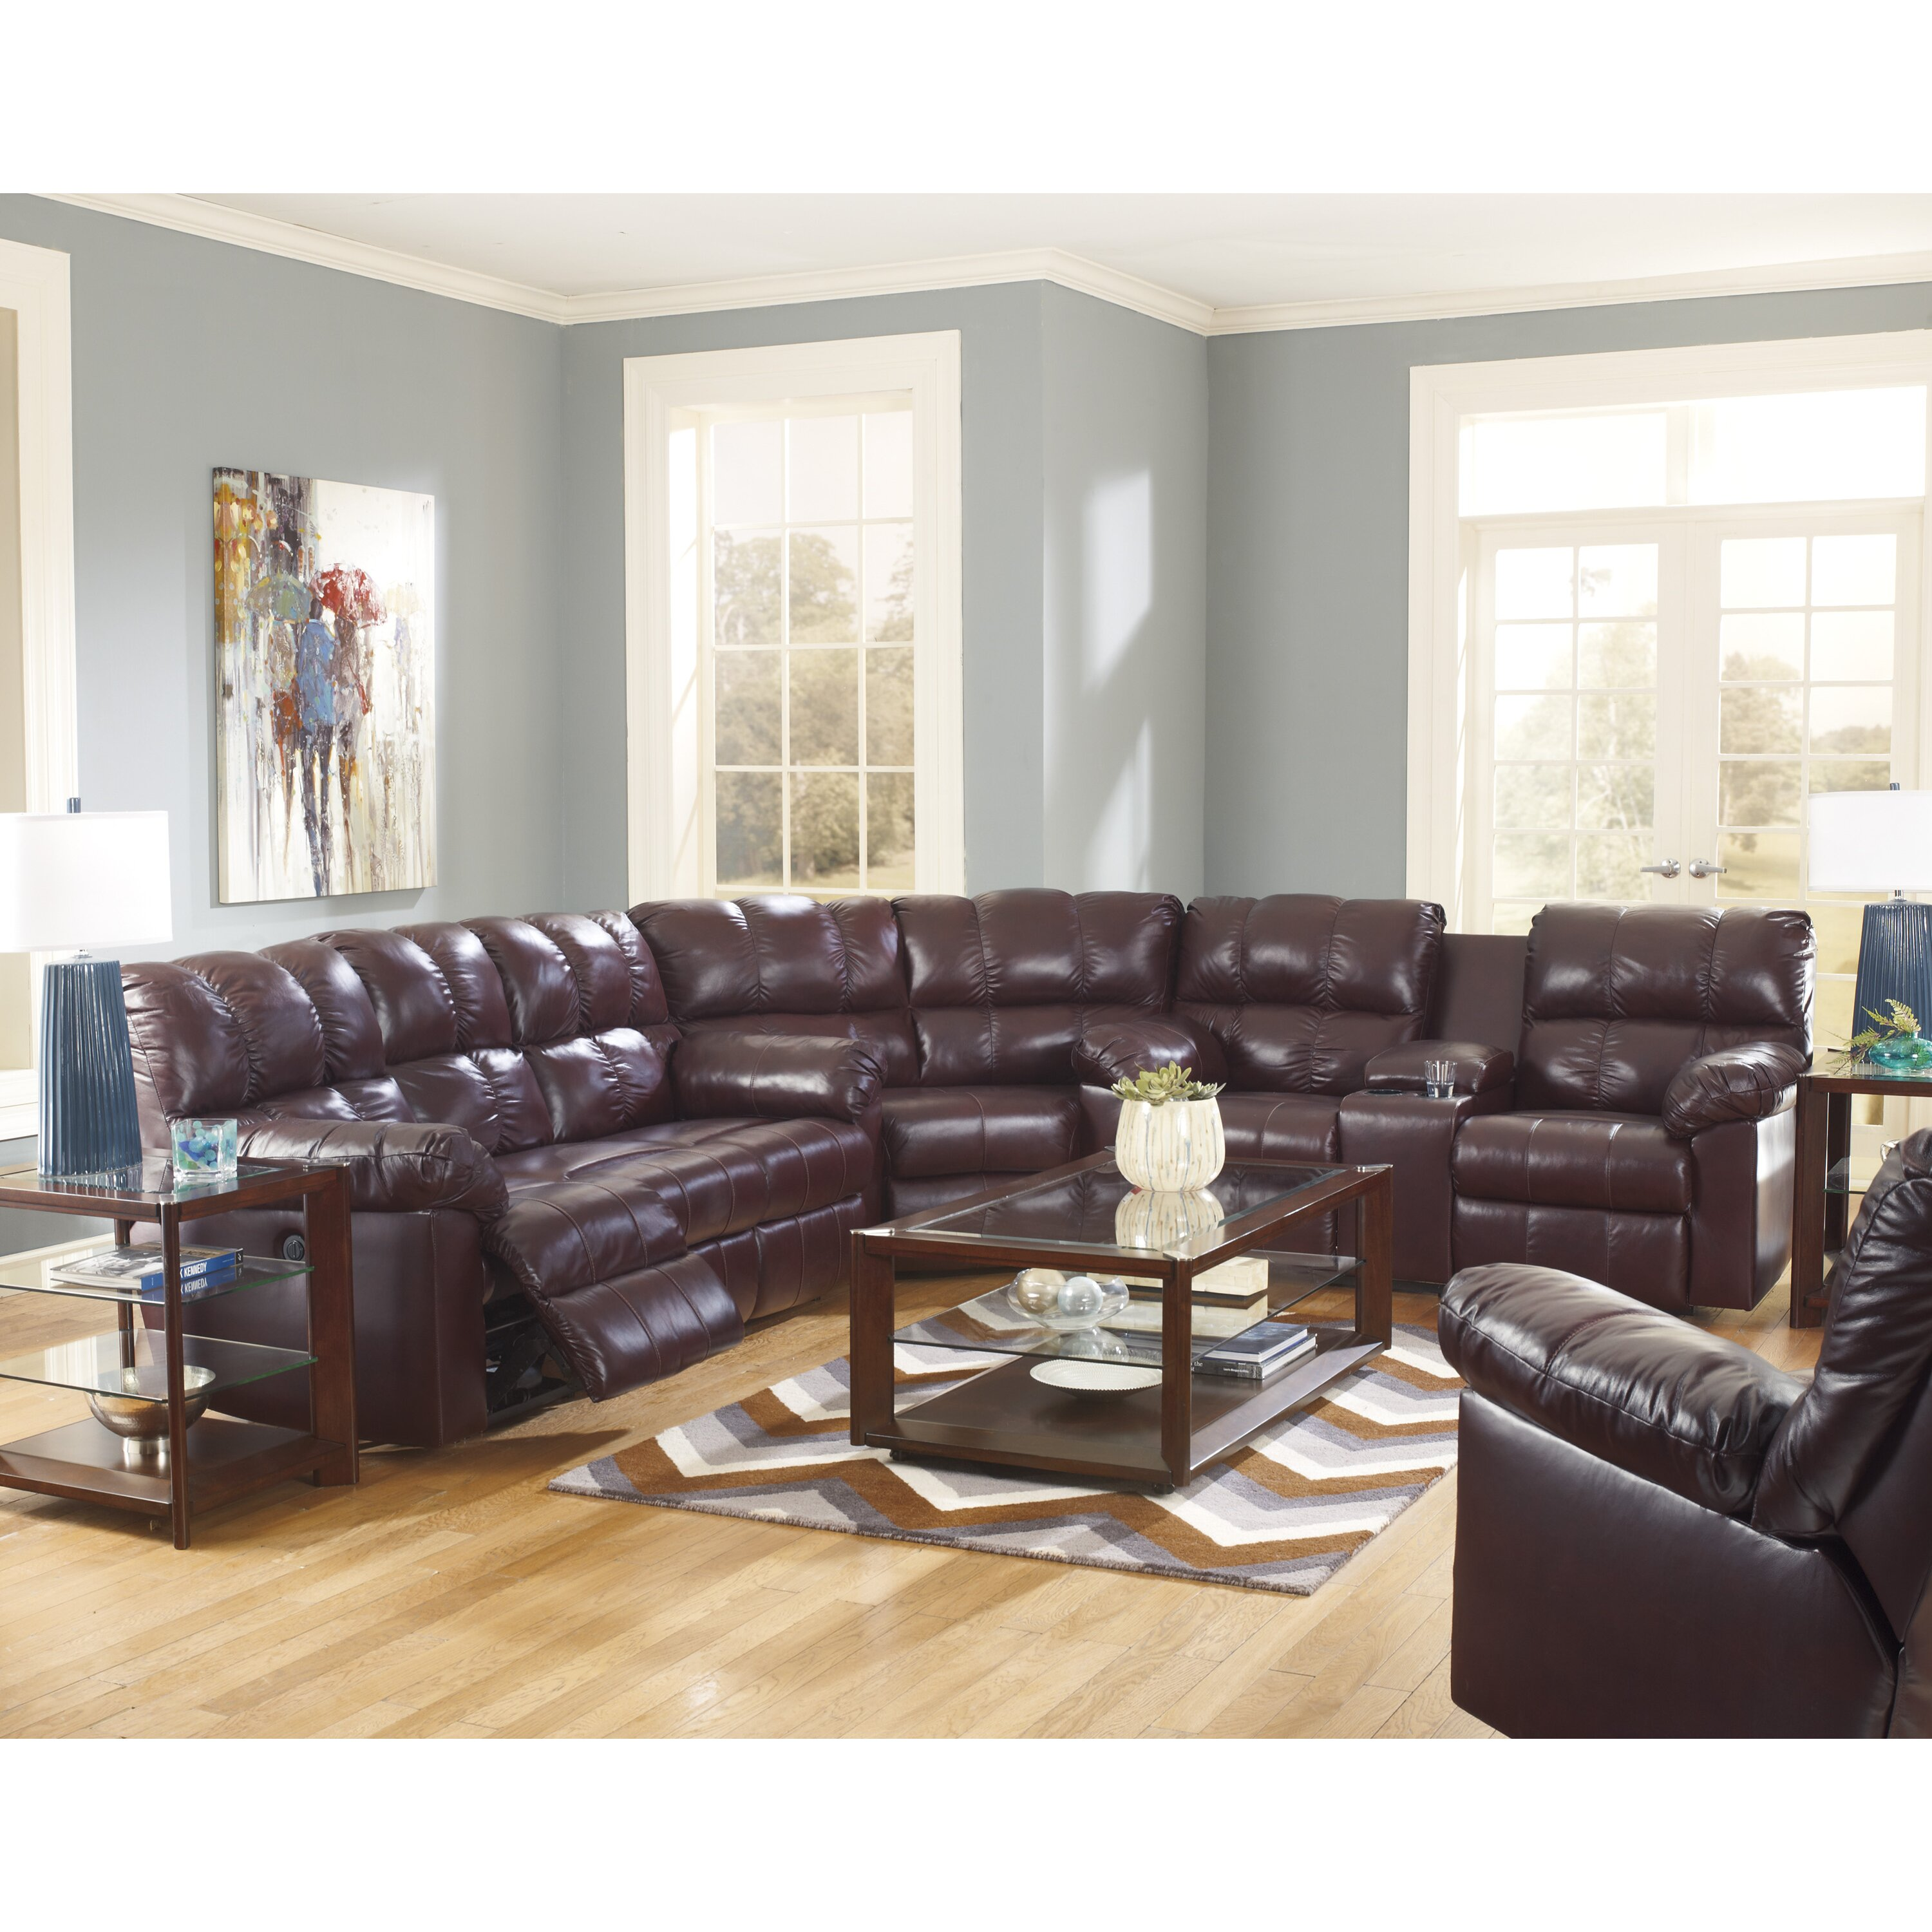 Signature Design By Ashley Kennett Sectional Reviews Wayfair Supply